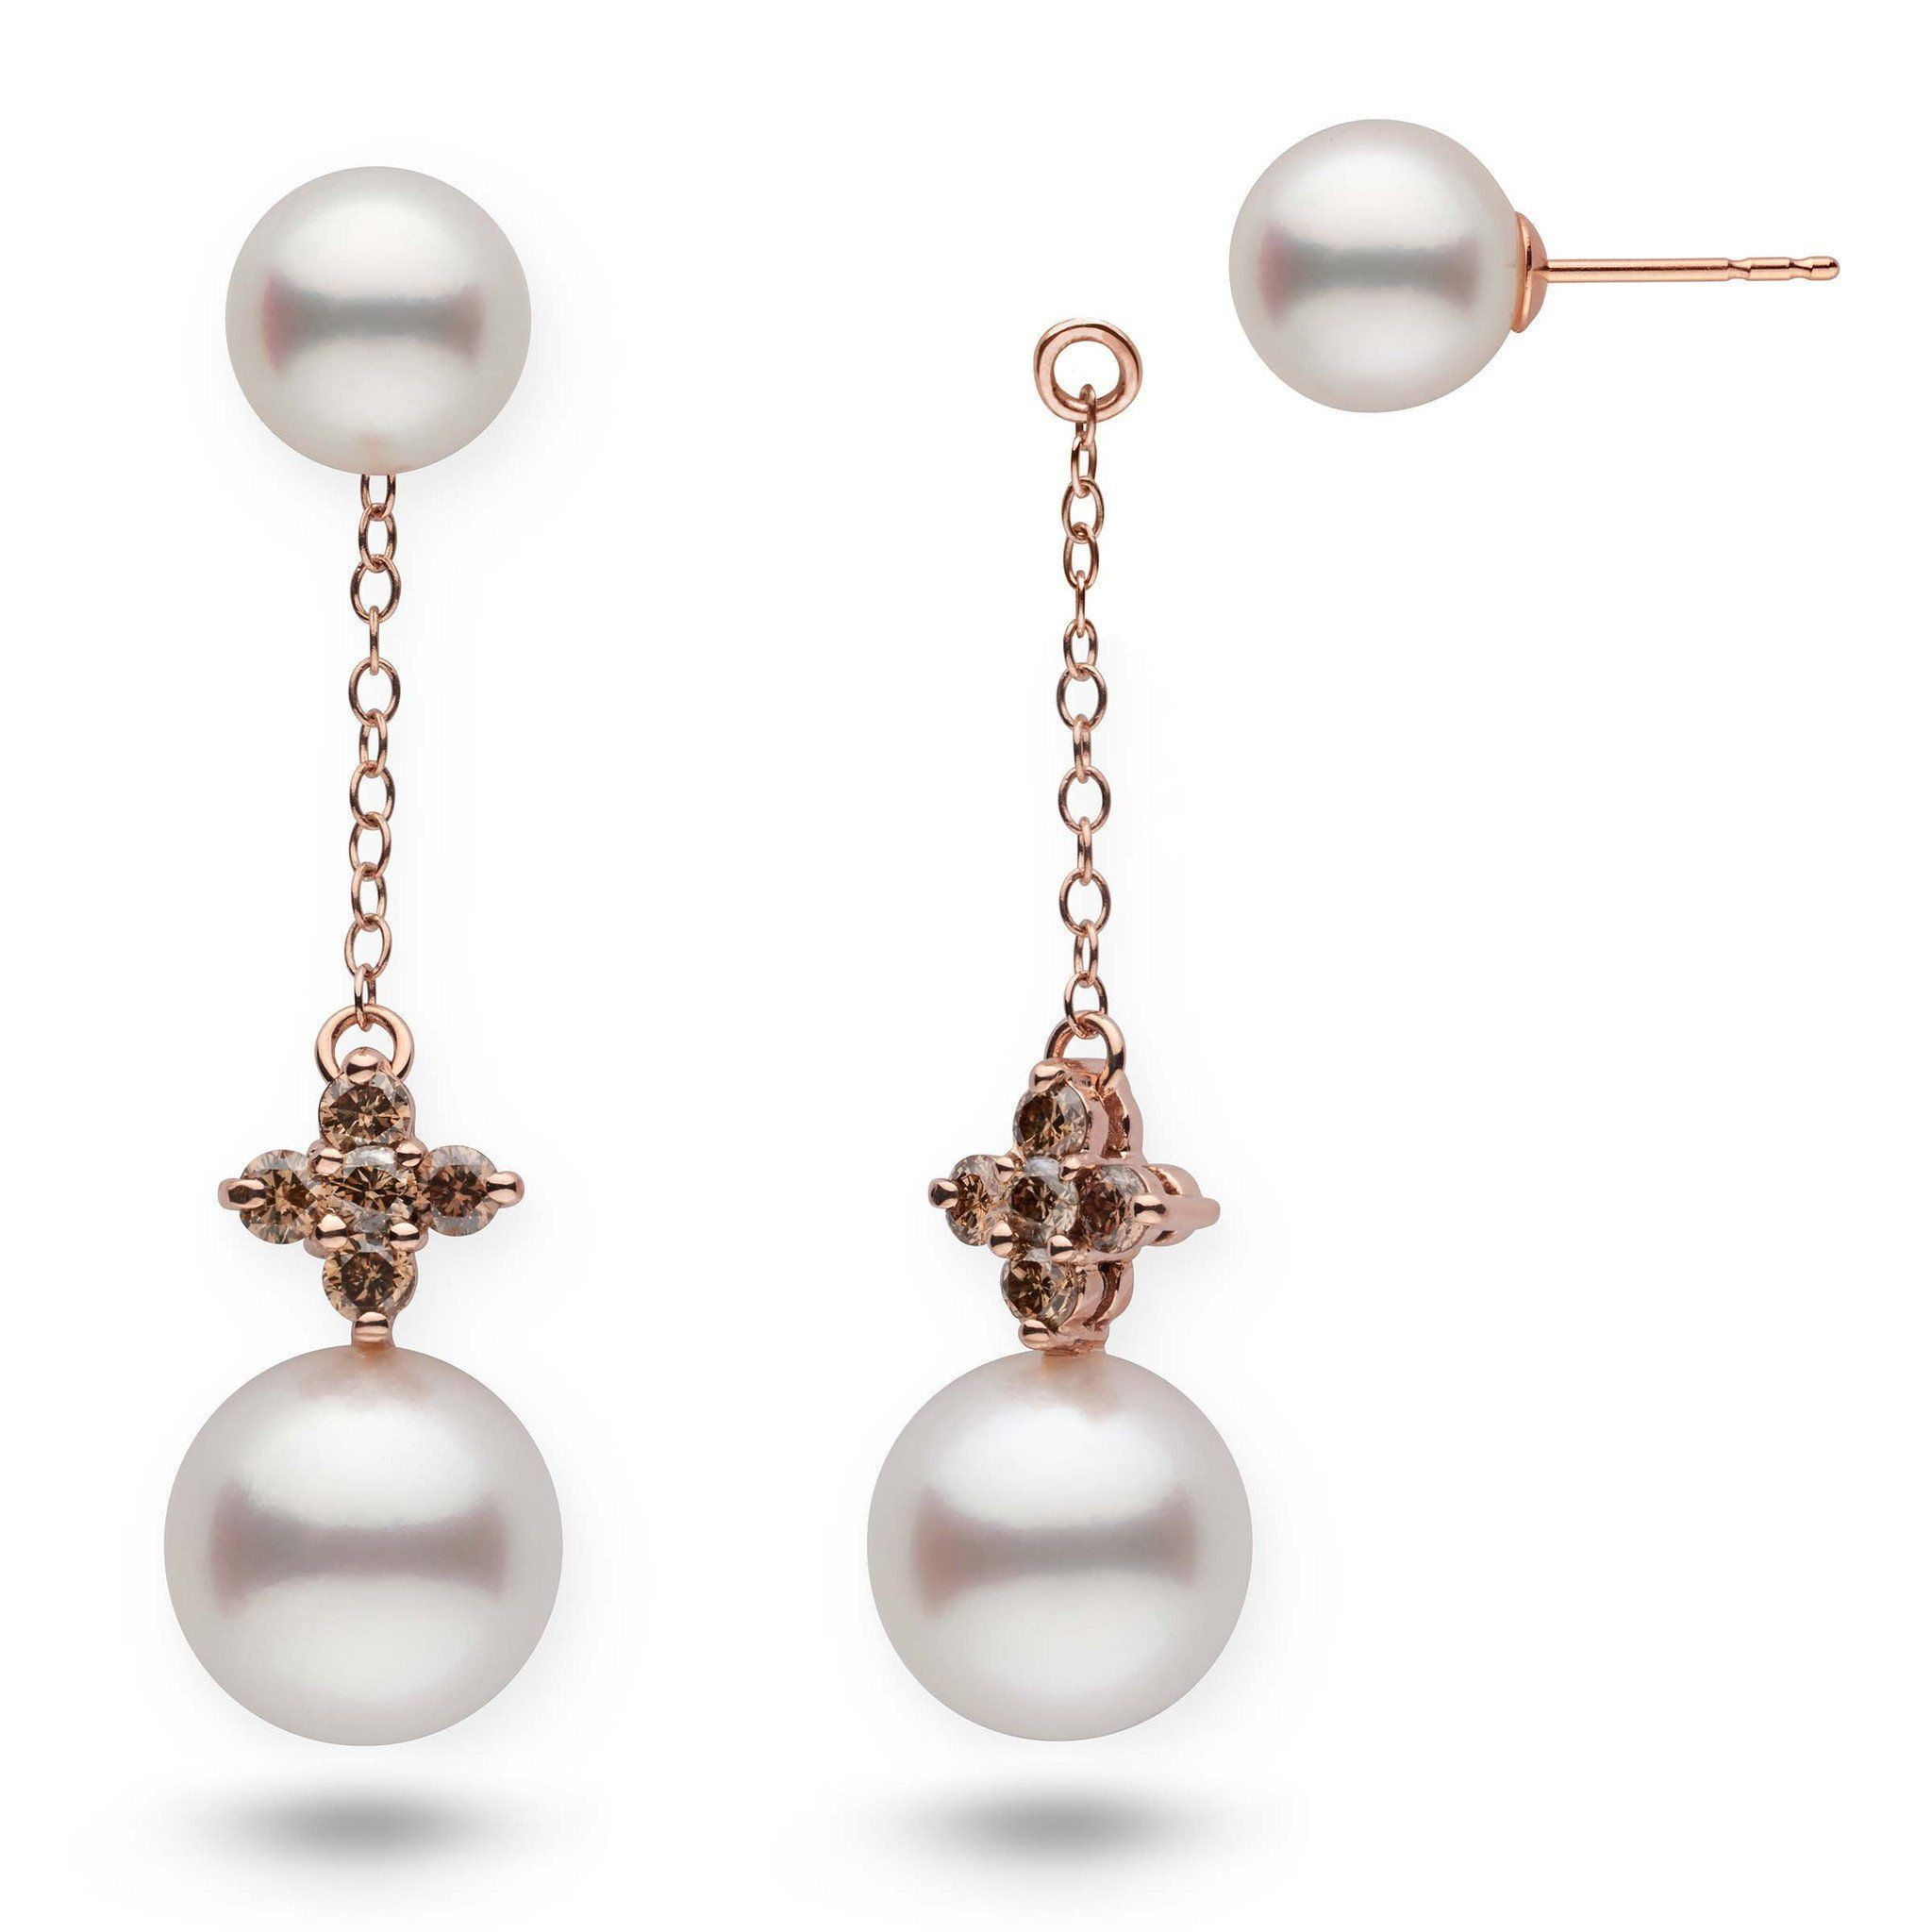 Lilac Collection White South Sea Pearl and Champagne Diamond Earring Jacket Set